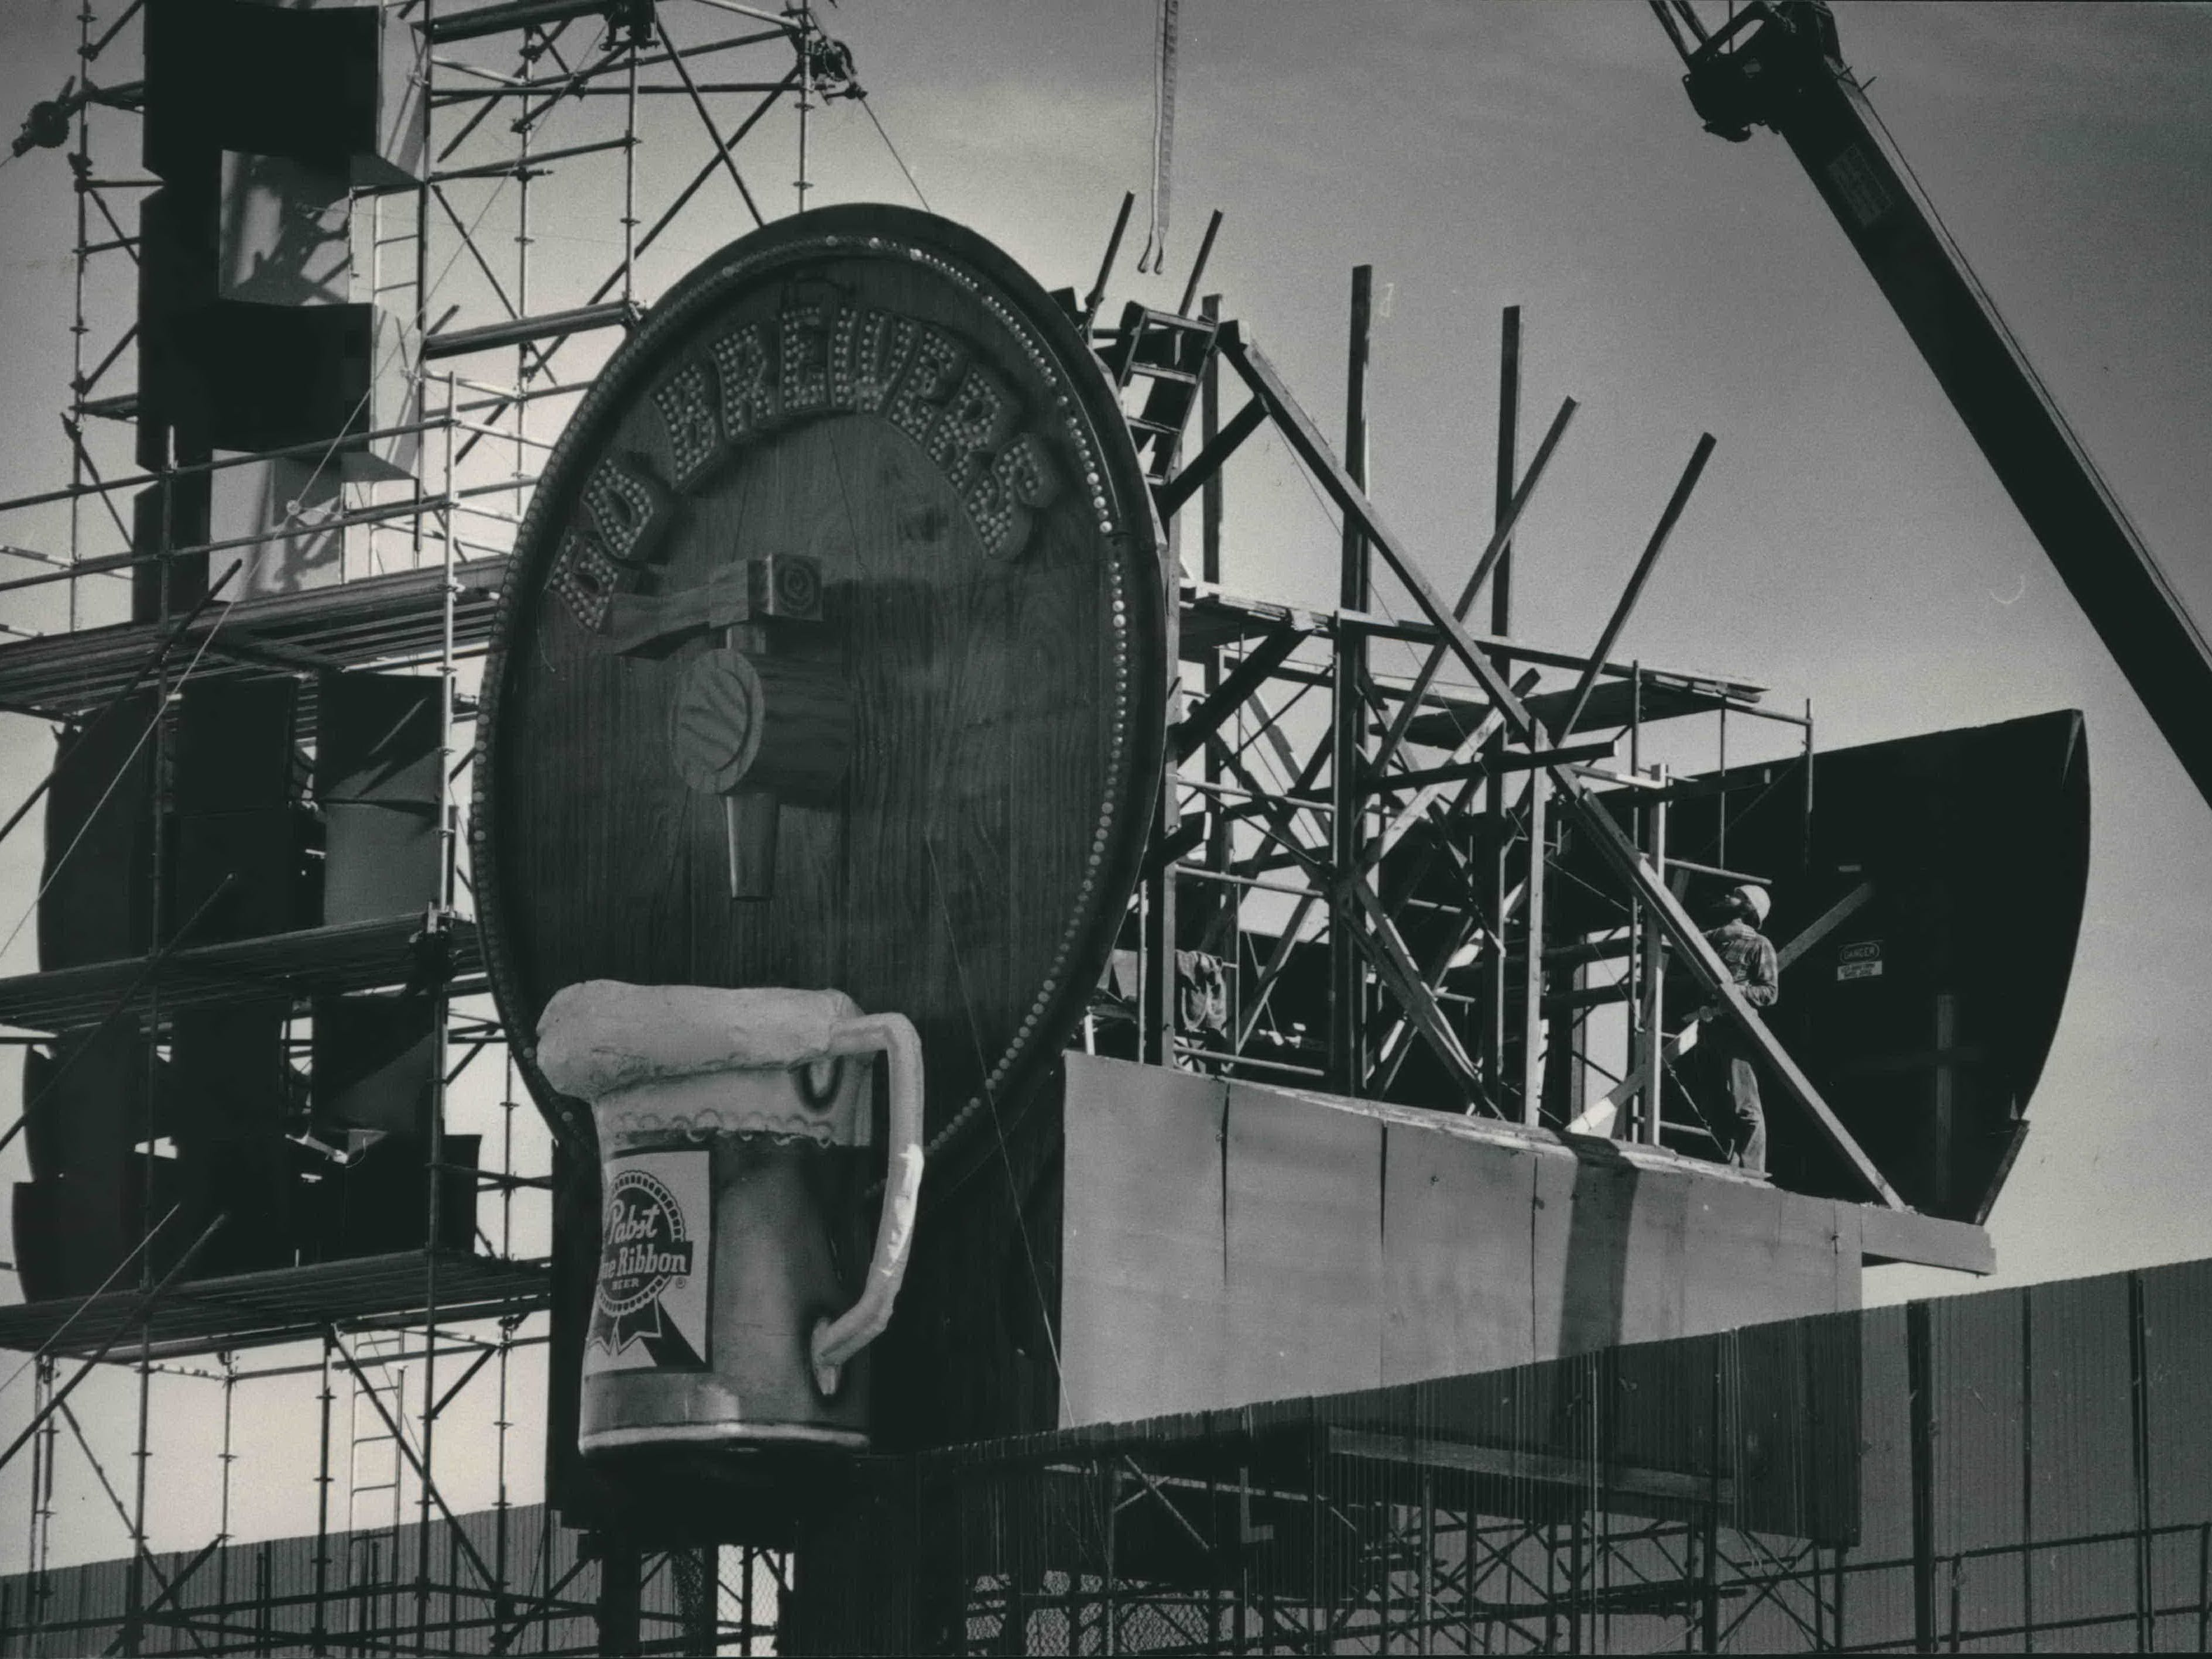 Workers dismantle Bernie Brewer's chalet, beer keg and mug on Oct. 17, 1984, to clear the way for a new sound system and additional bleachers at County Stadium. This photo was published in the Oct. 18, 1984, Milwaukee Sentinel.